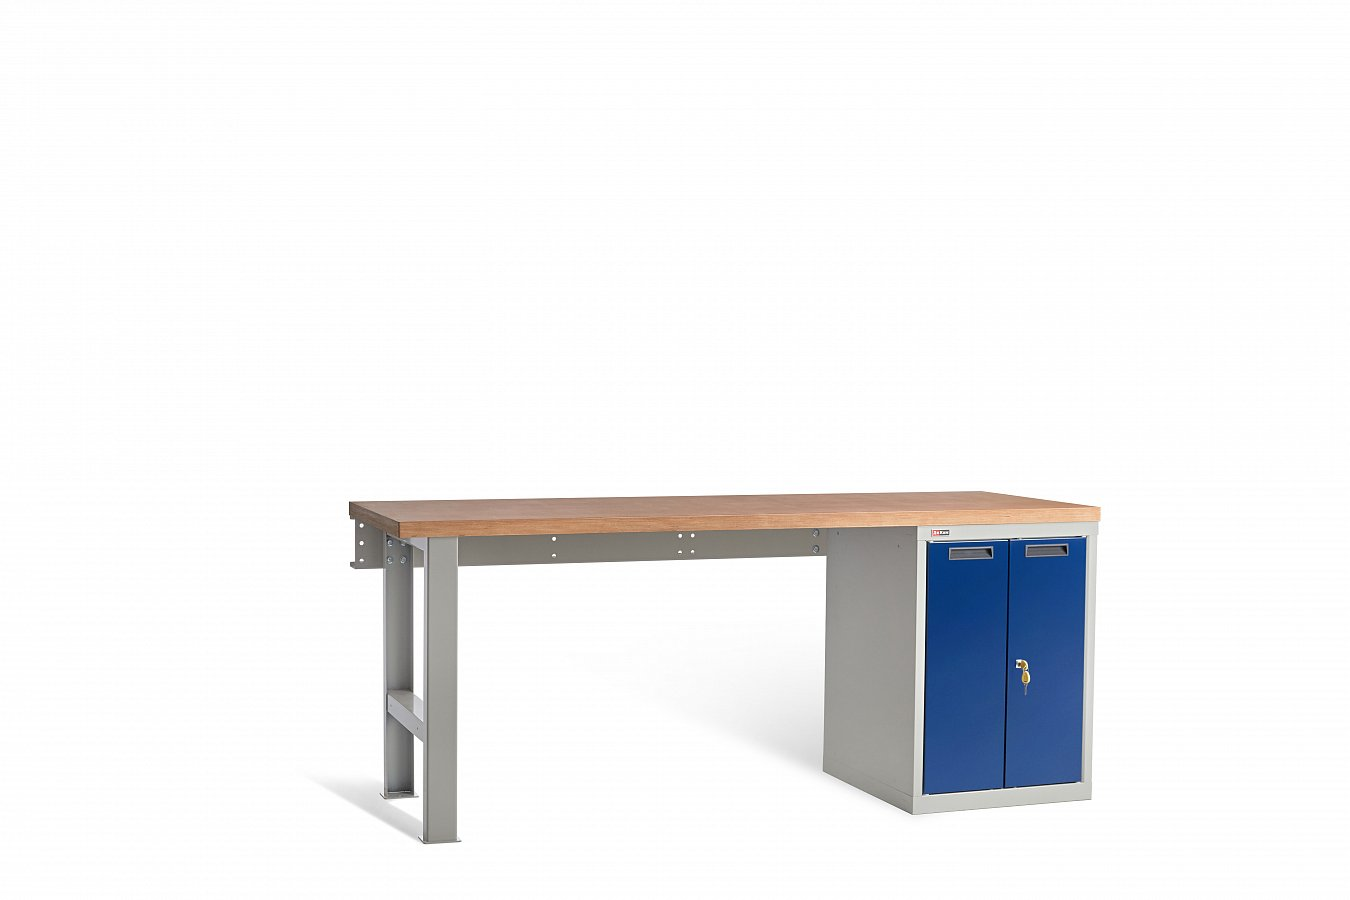 DiKom Workbench VS-200-03 (5)